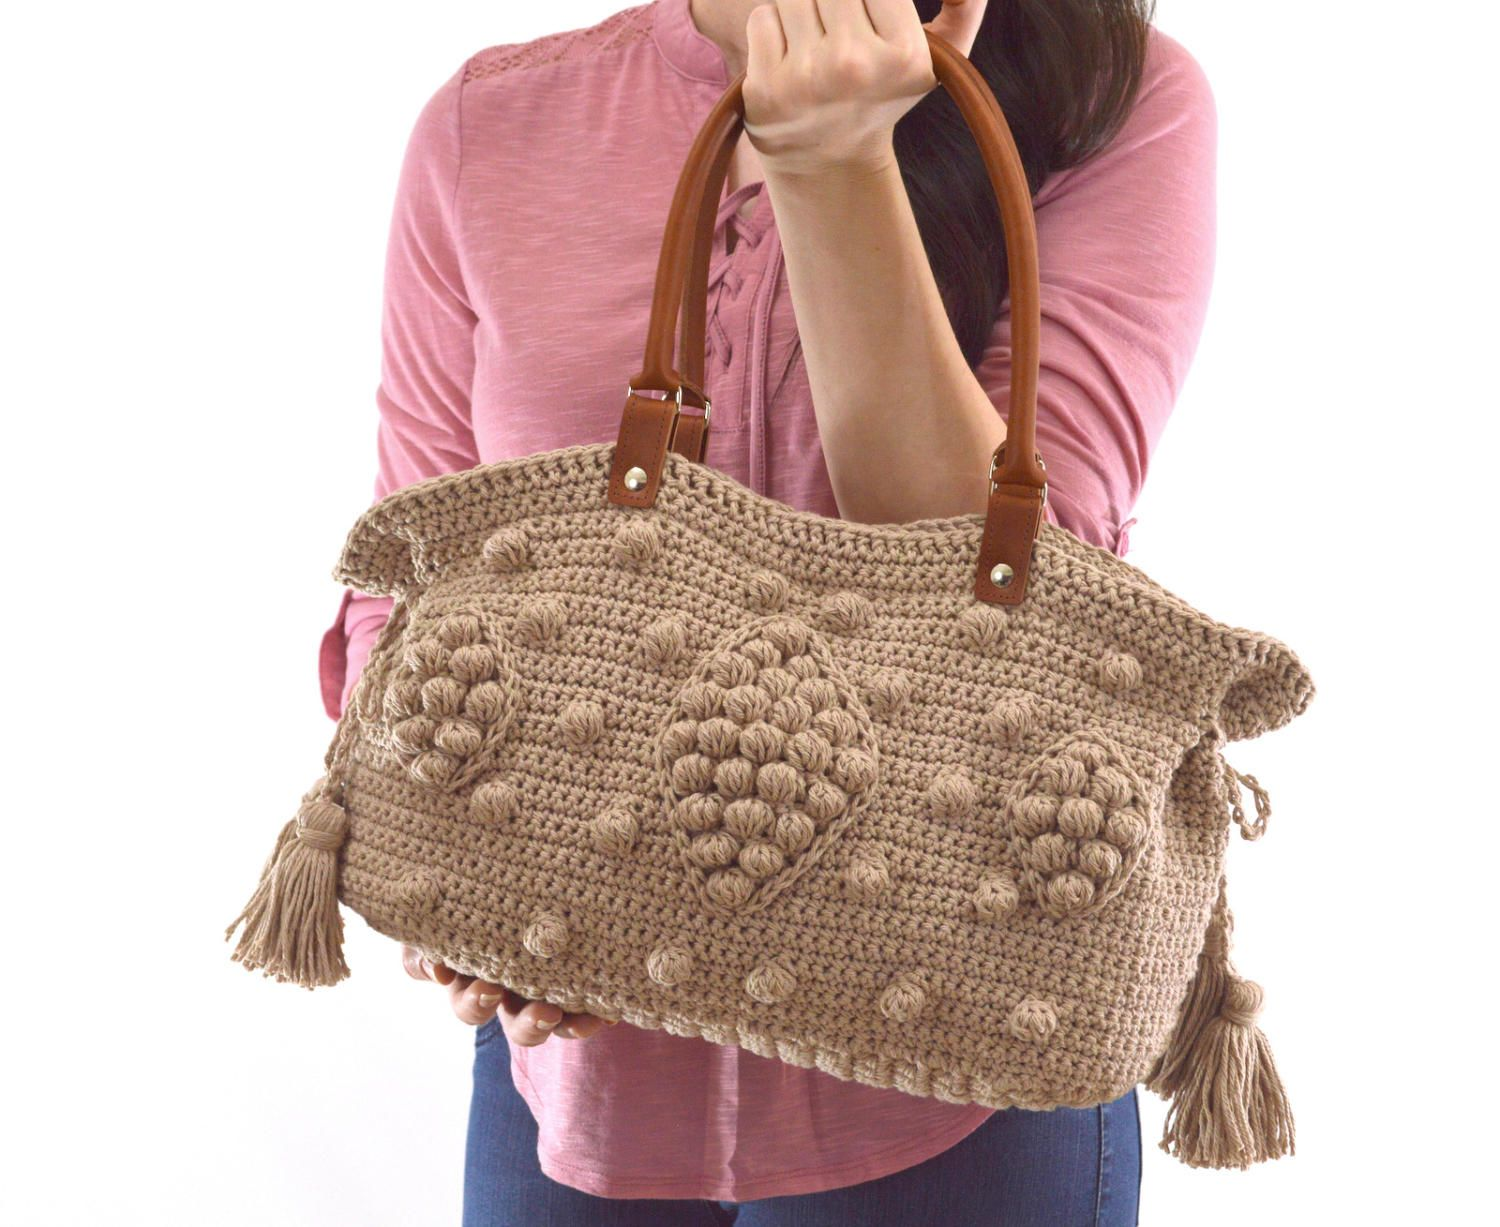 55ccf04f2d Gerard Darel Dublin Inspired Crochet Handbag with Genuine Leather Handles, Crochet  Bag, Summer Bag, Boho Style Bag by Avaneska on Etsy